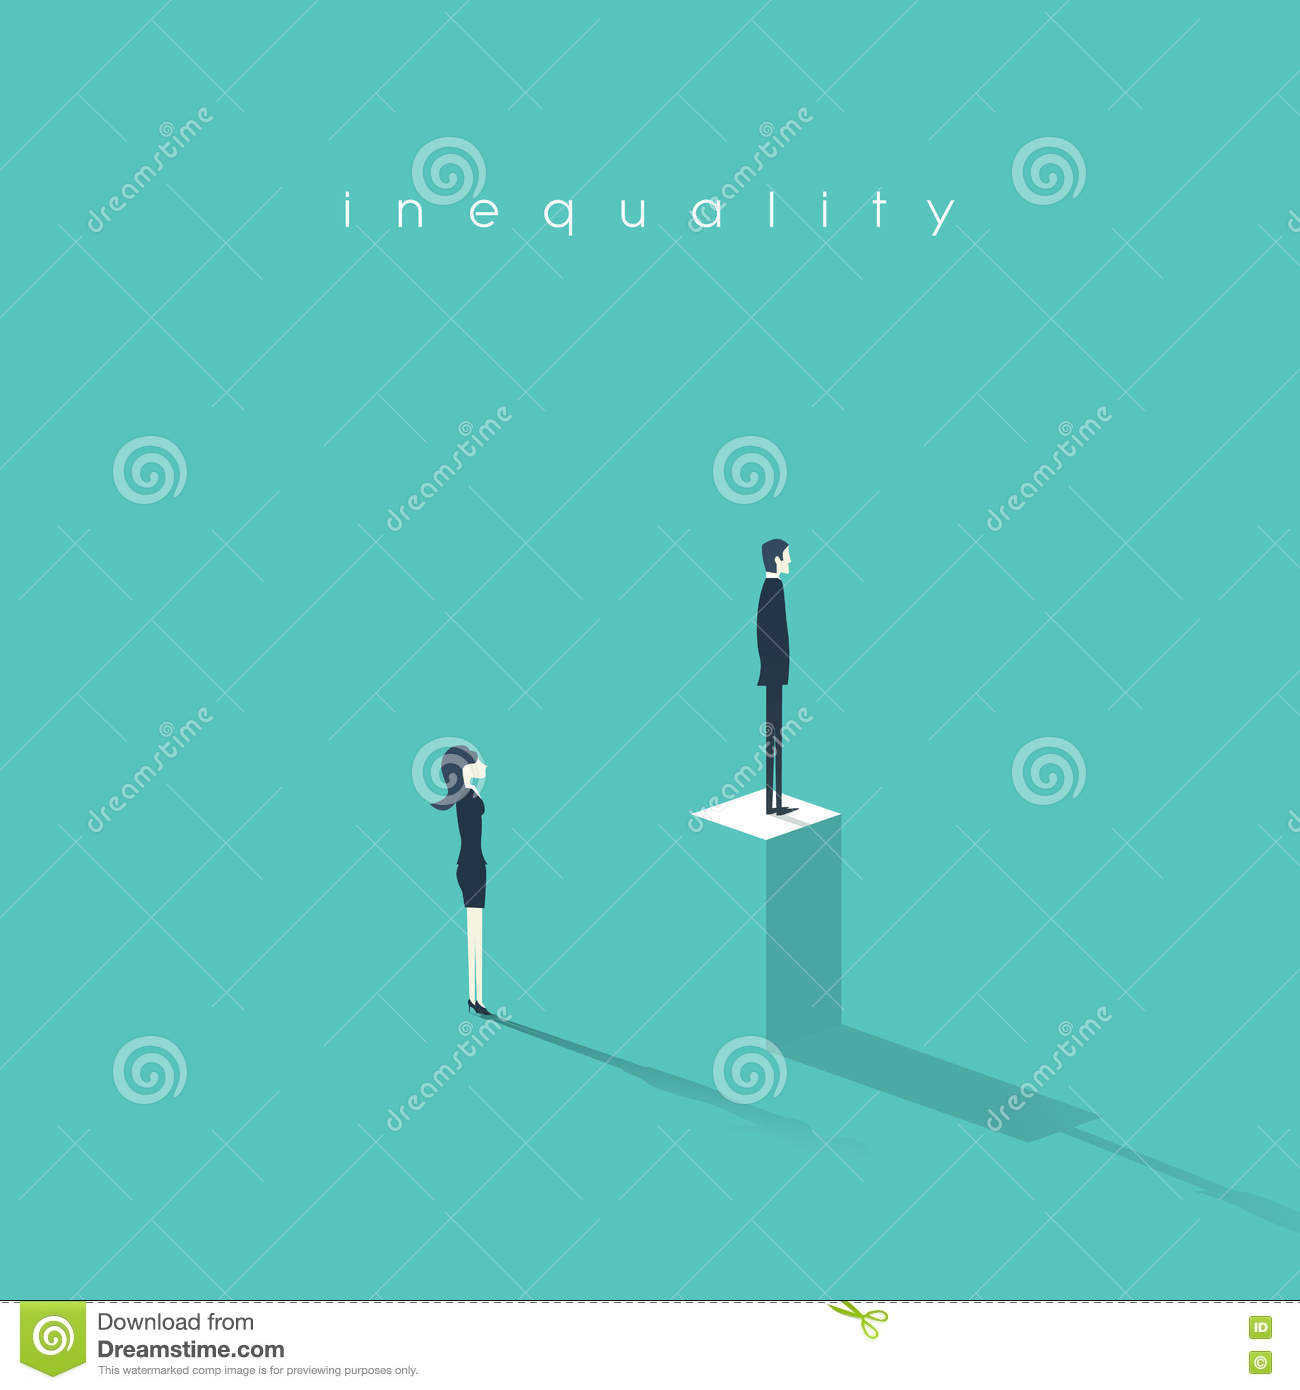 inequality concept vector illustration man versus w in inequality concept vector illustration man versus w in business difference and discrimination in professional work